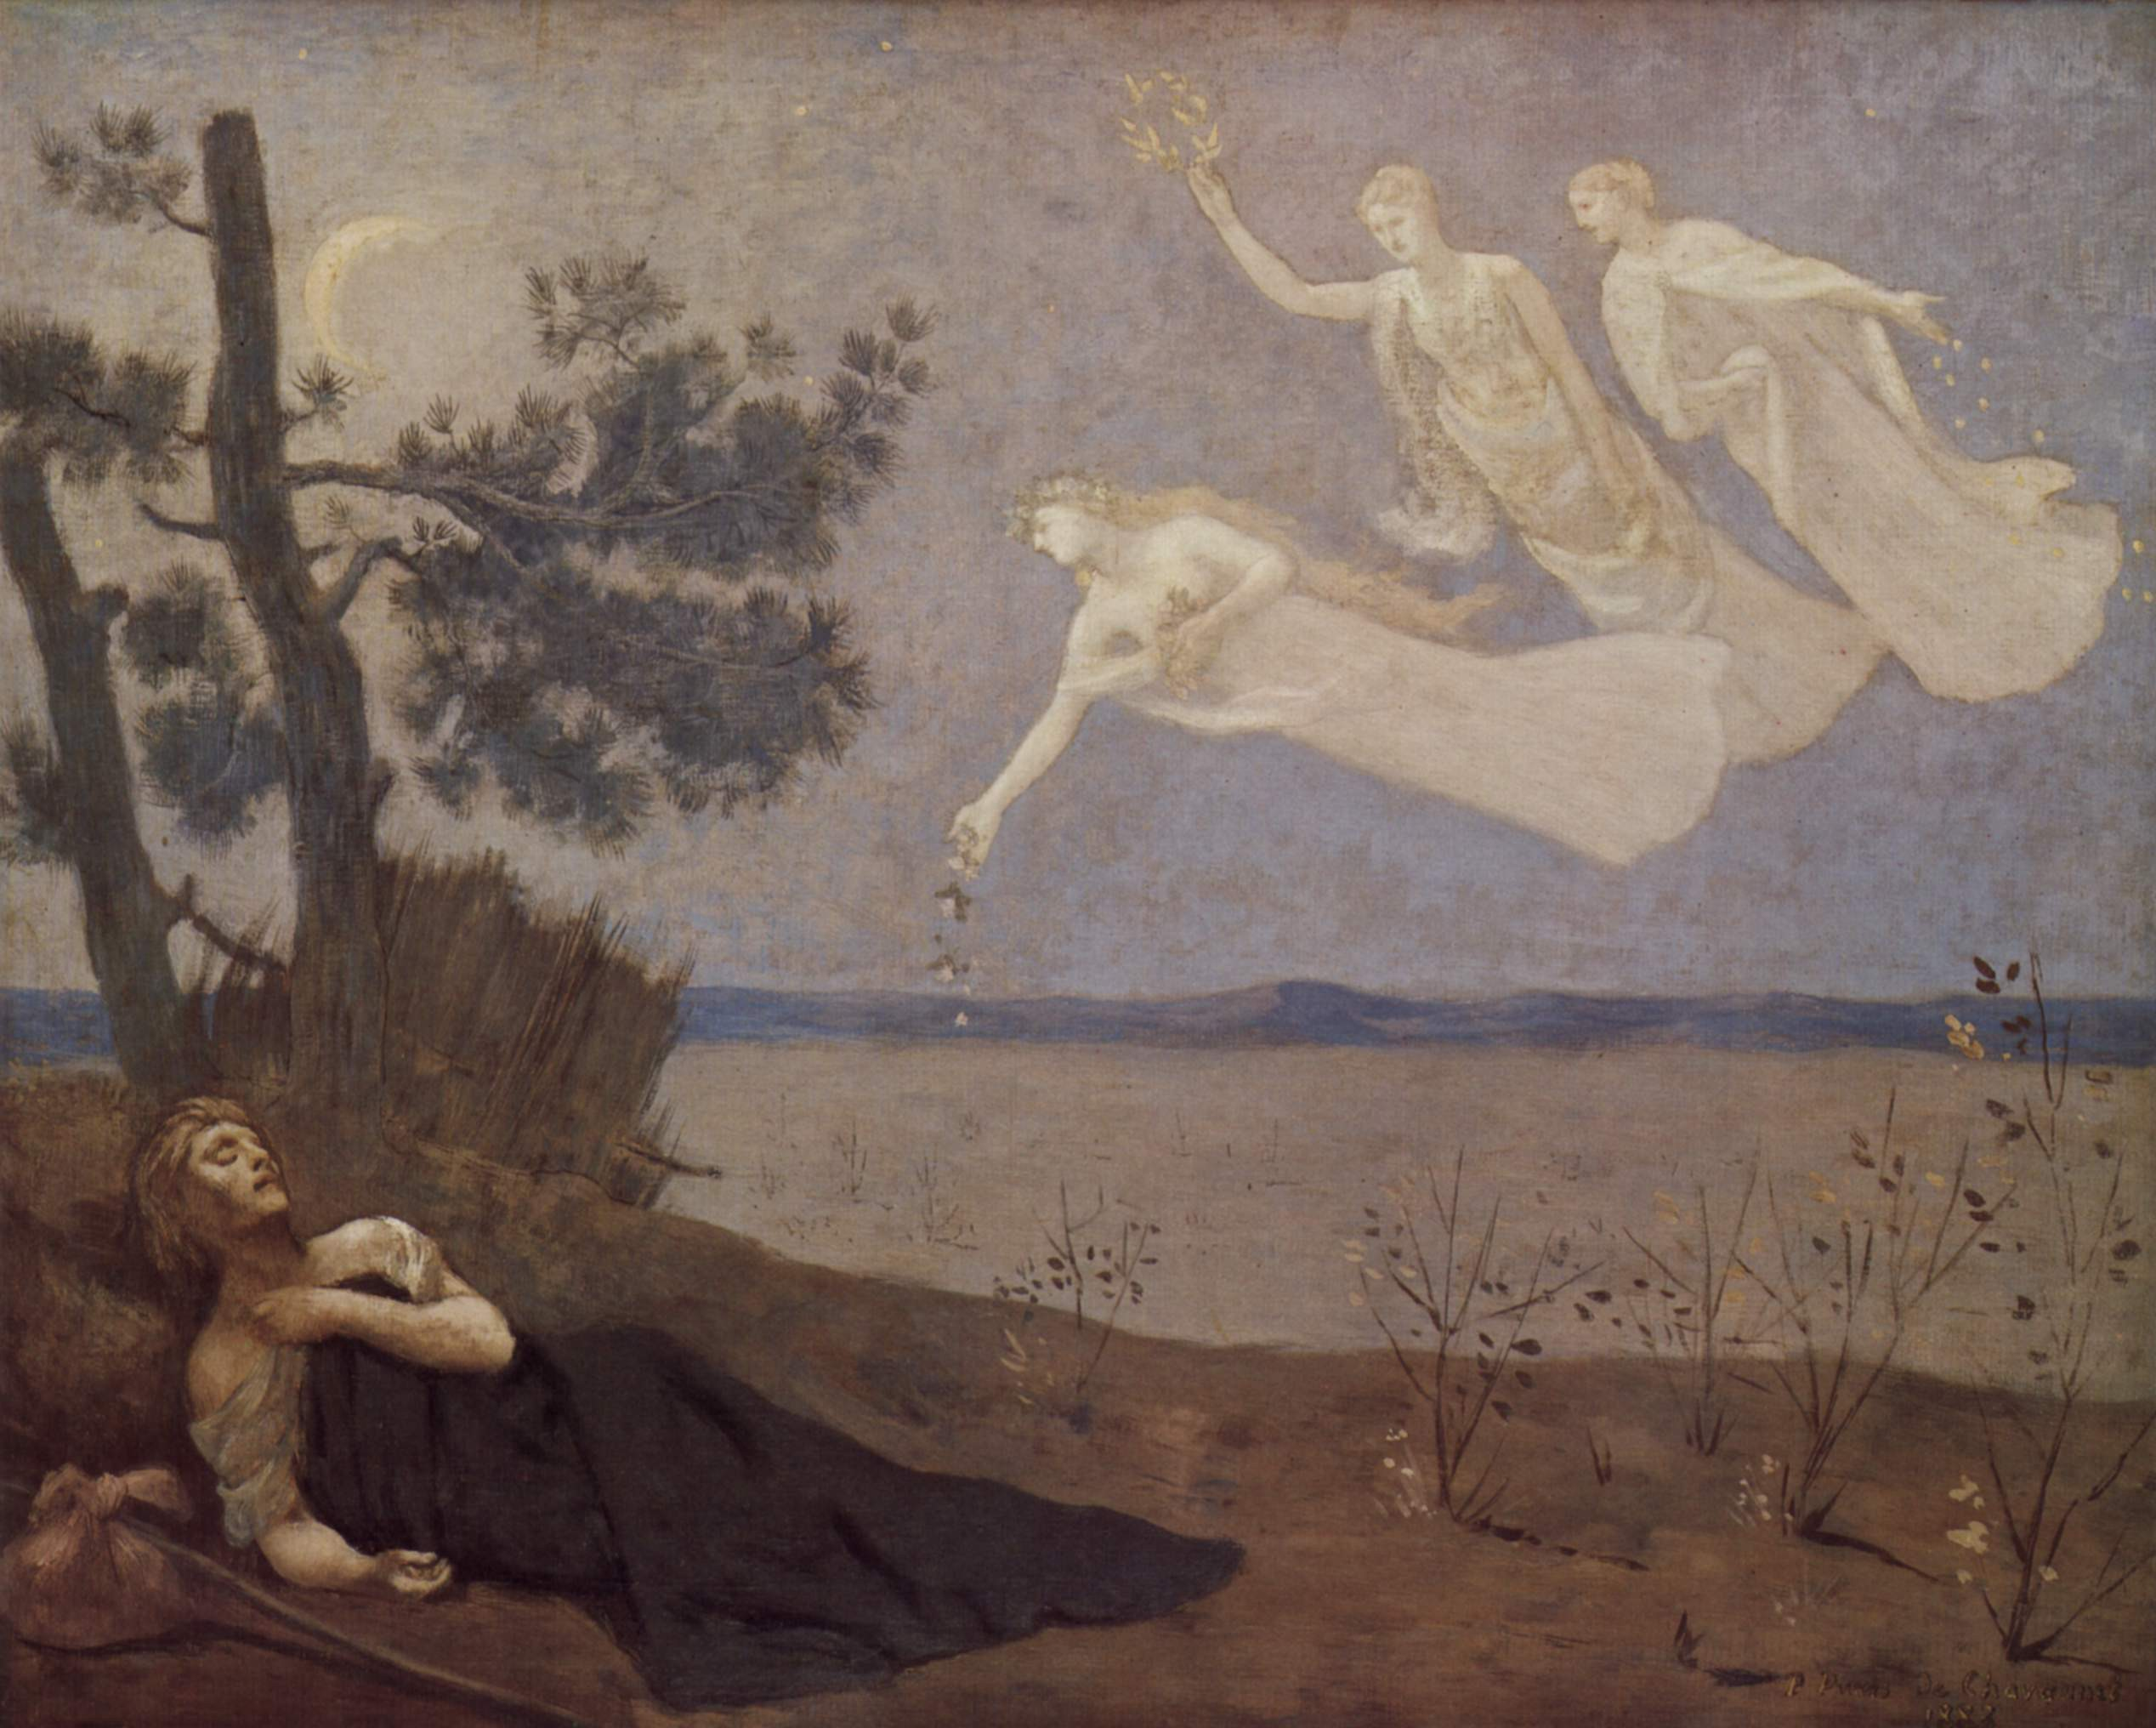 Puvis de Chavannes painting, The Dream